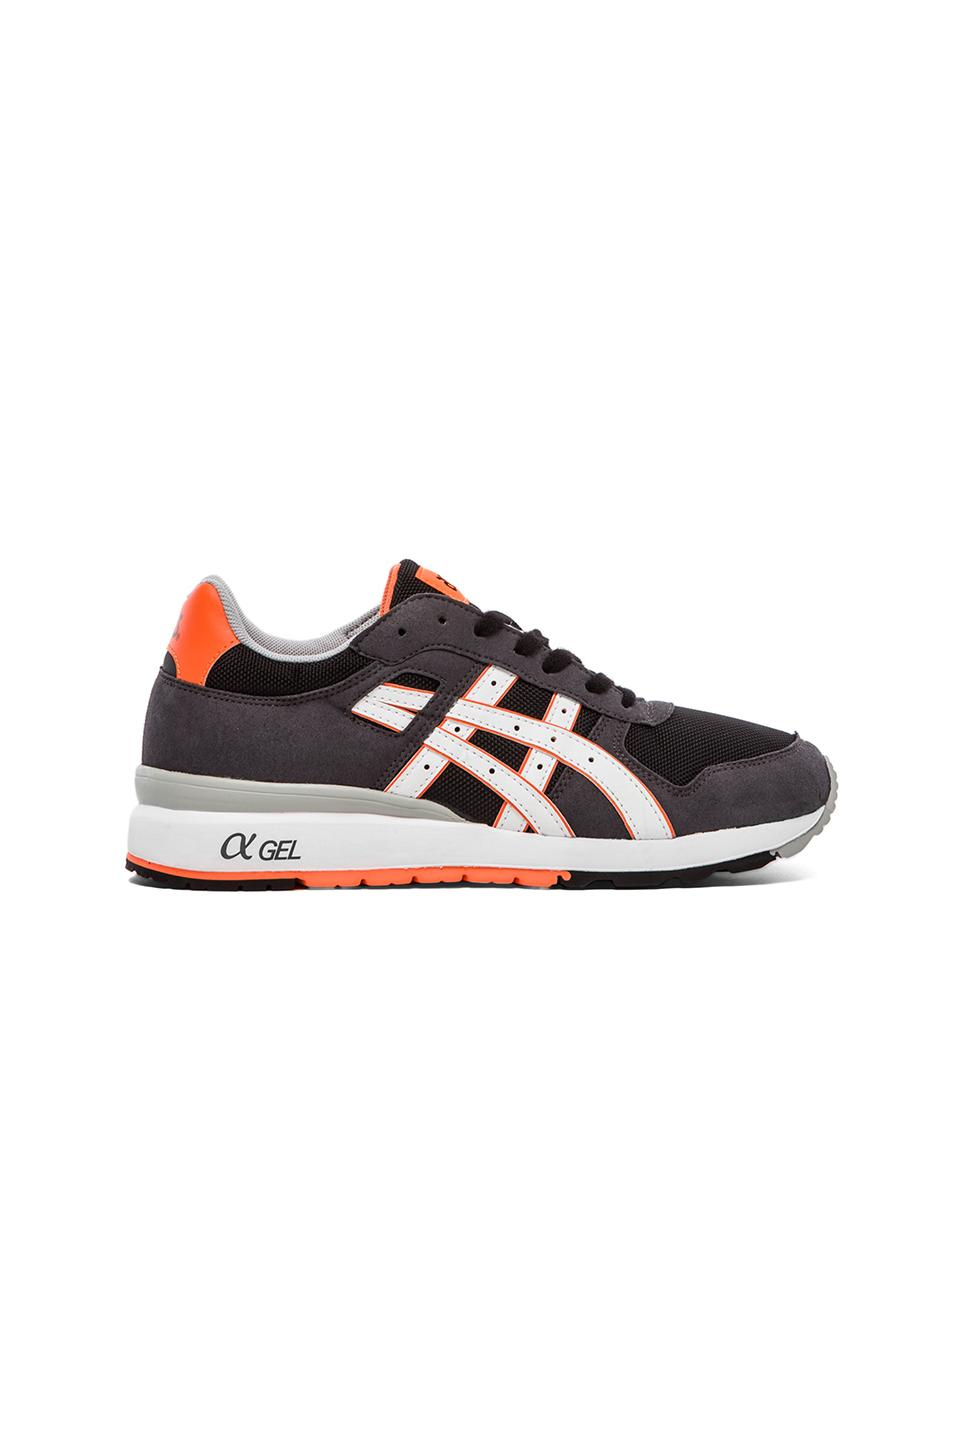 Asics GT-II in Black & Bright Orange